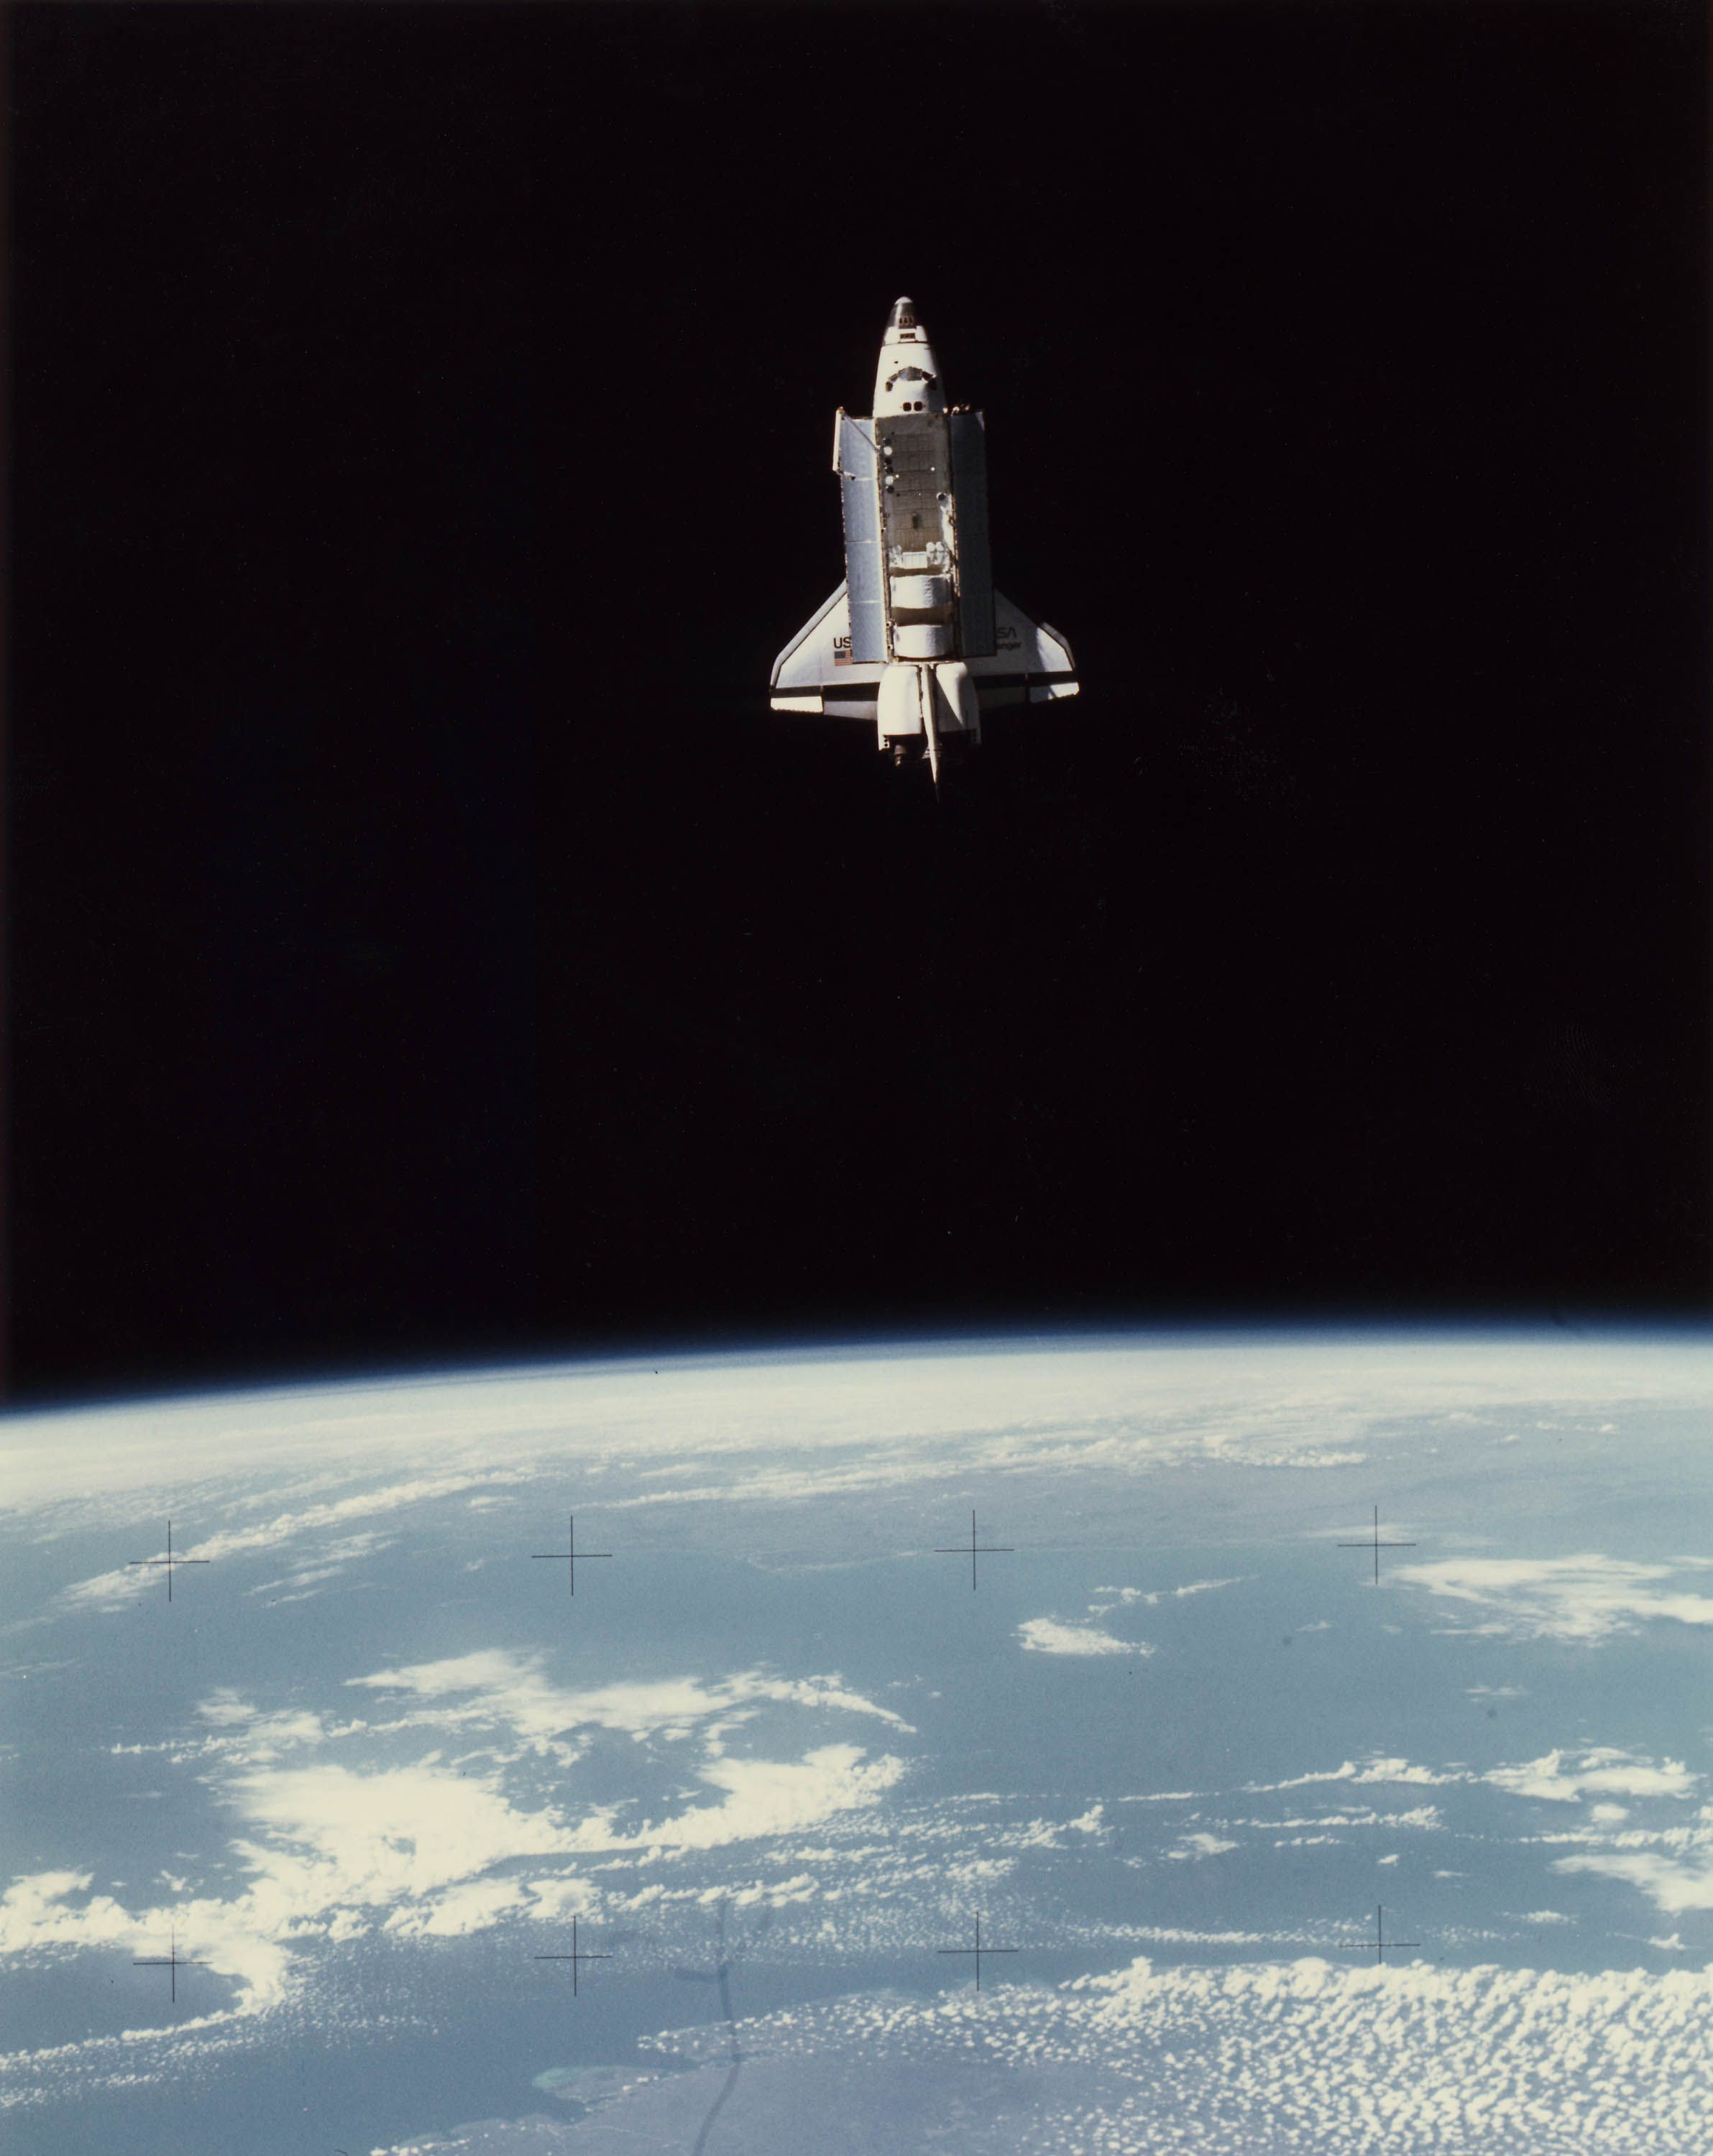 Details About Nasa Space Shuttle Columbia In Earth Orbit With Bay